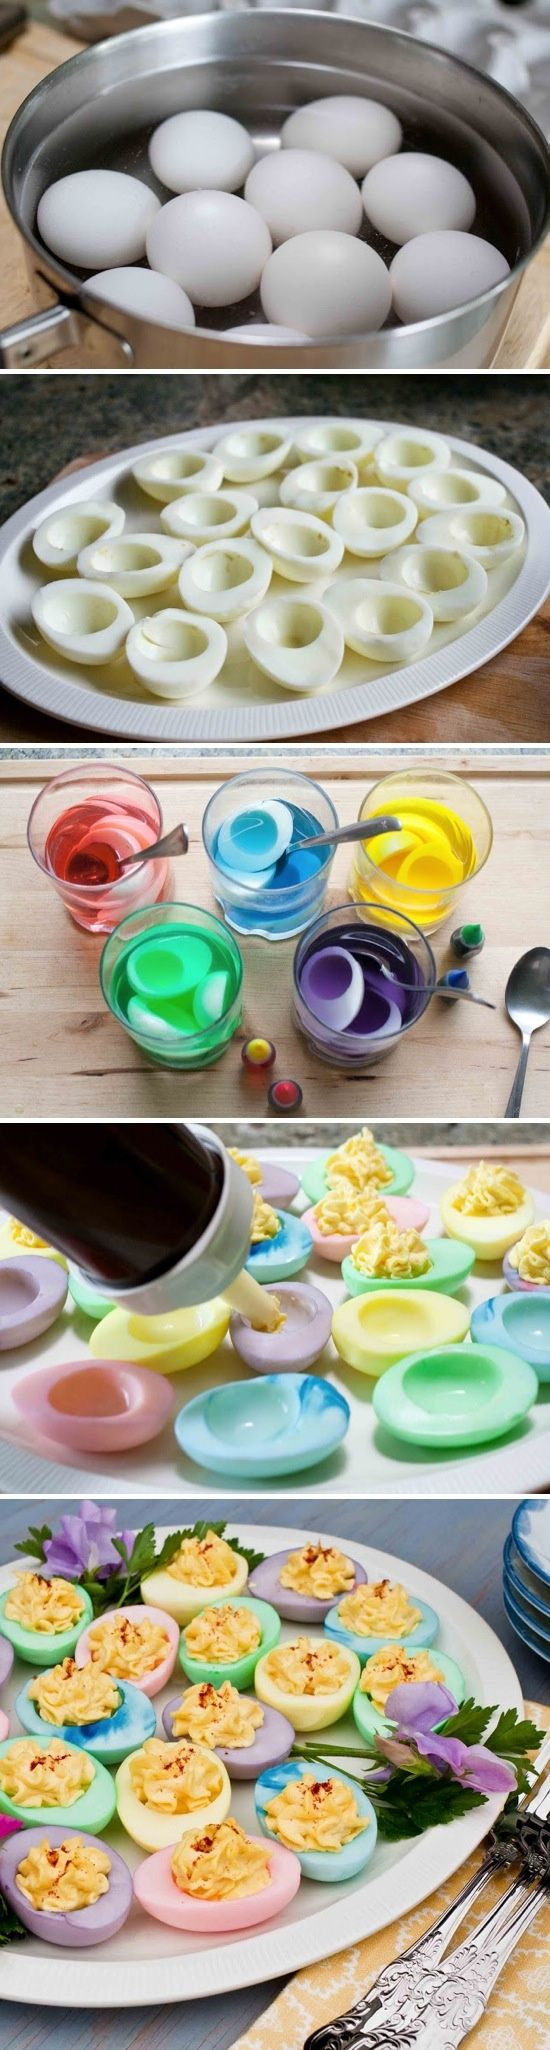 Colorful Deviled Eggs | Recipe By Photo...